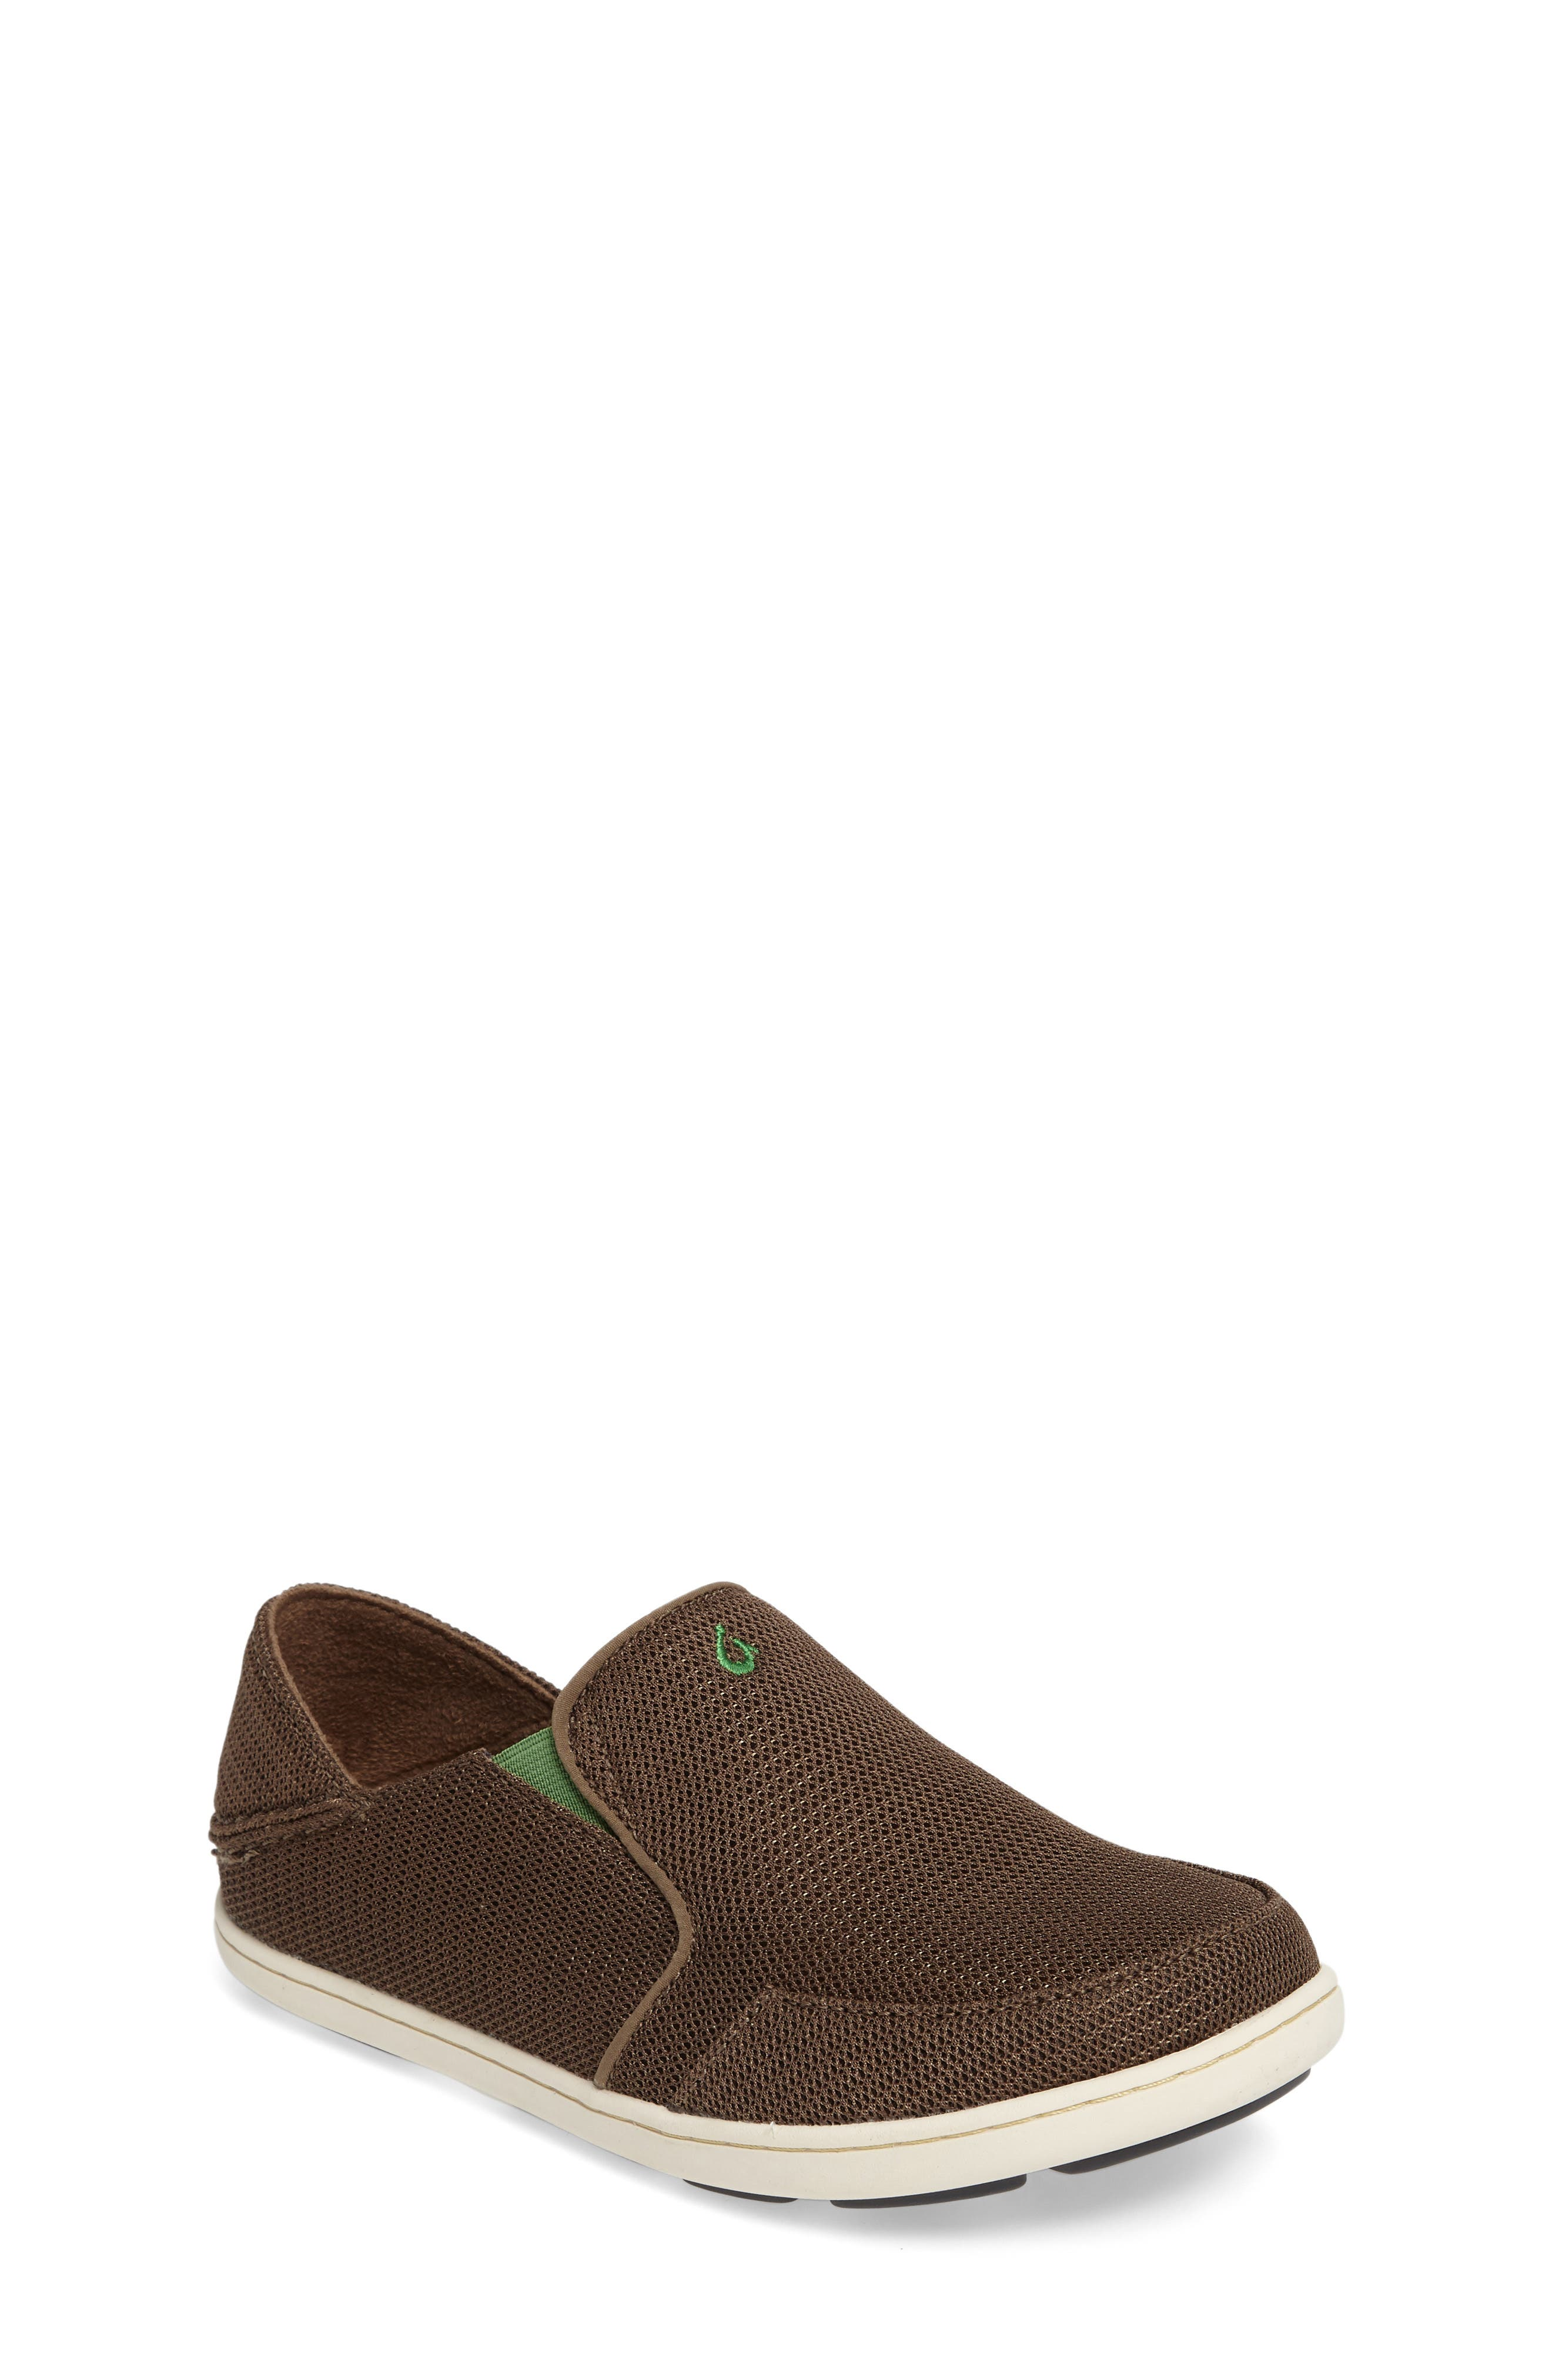 OluKai 'Nohea' Mesh Shoe (Toddler, Little Kid & Big Kid)